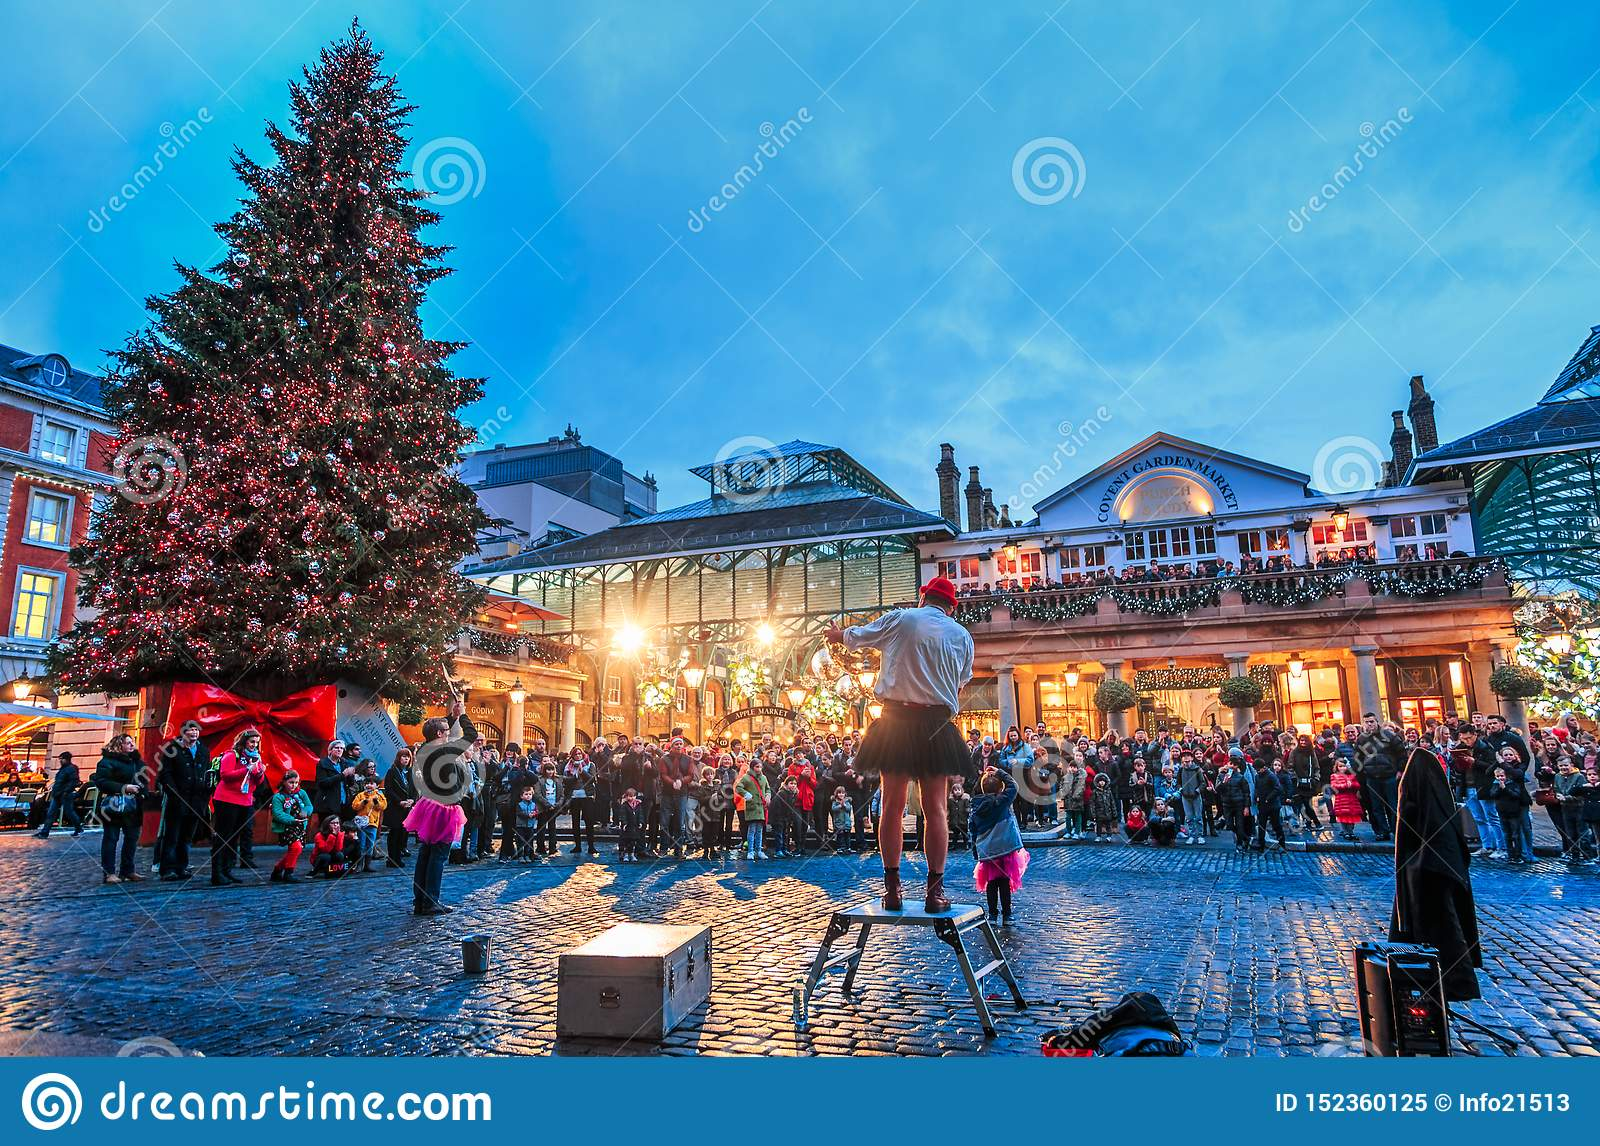 Christmas In England.Street Performers And Christmas Treen At Covent Garden